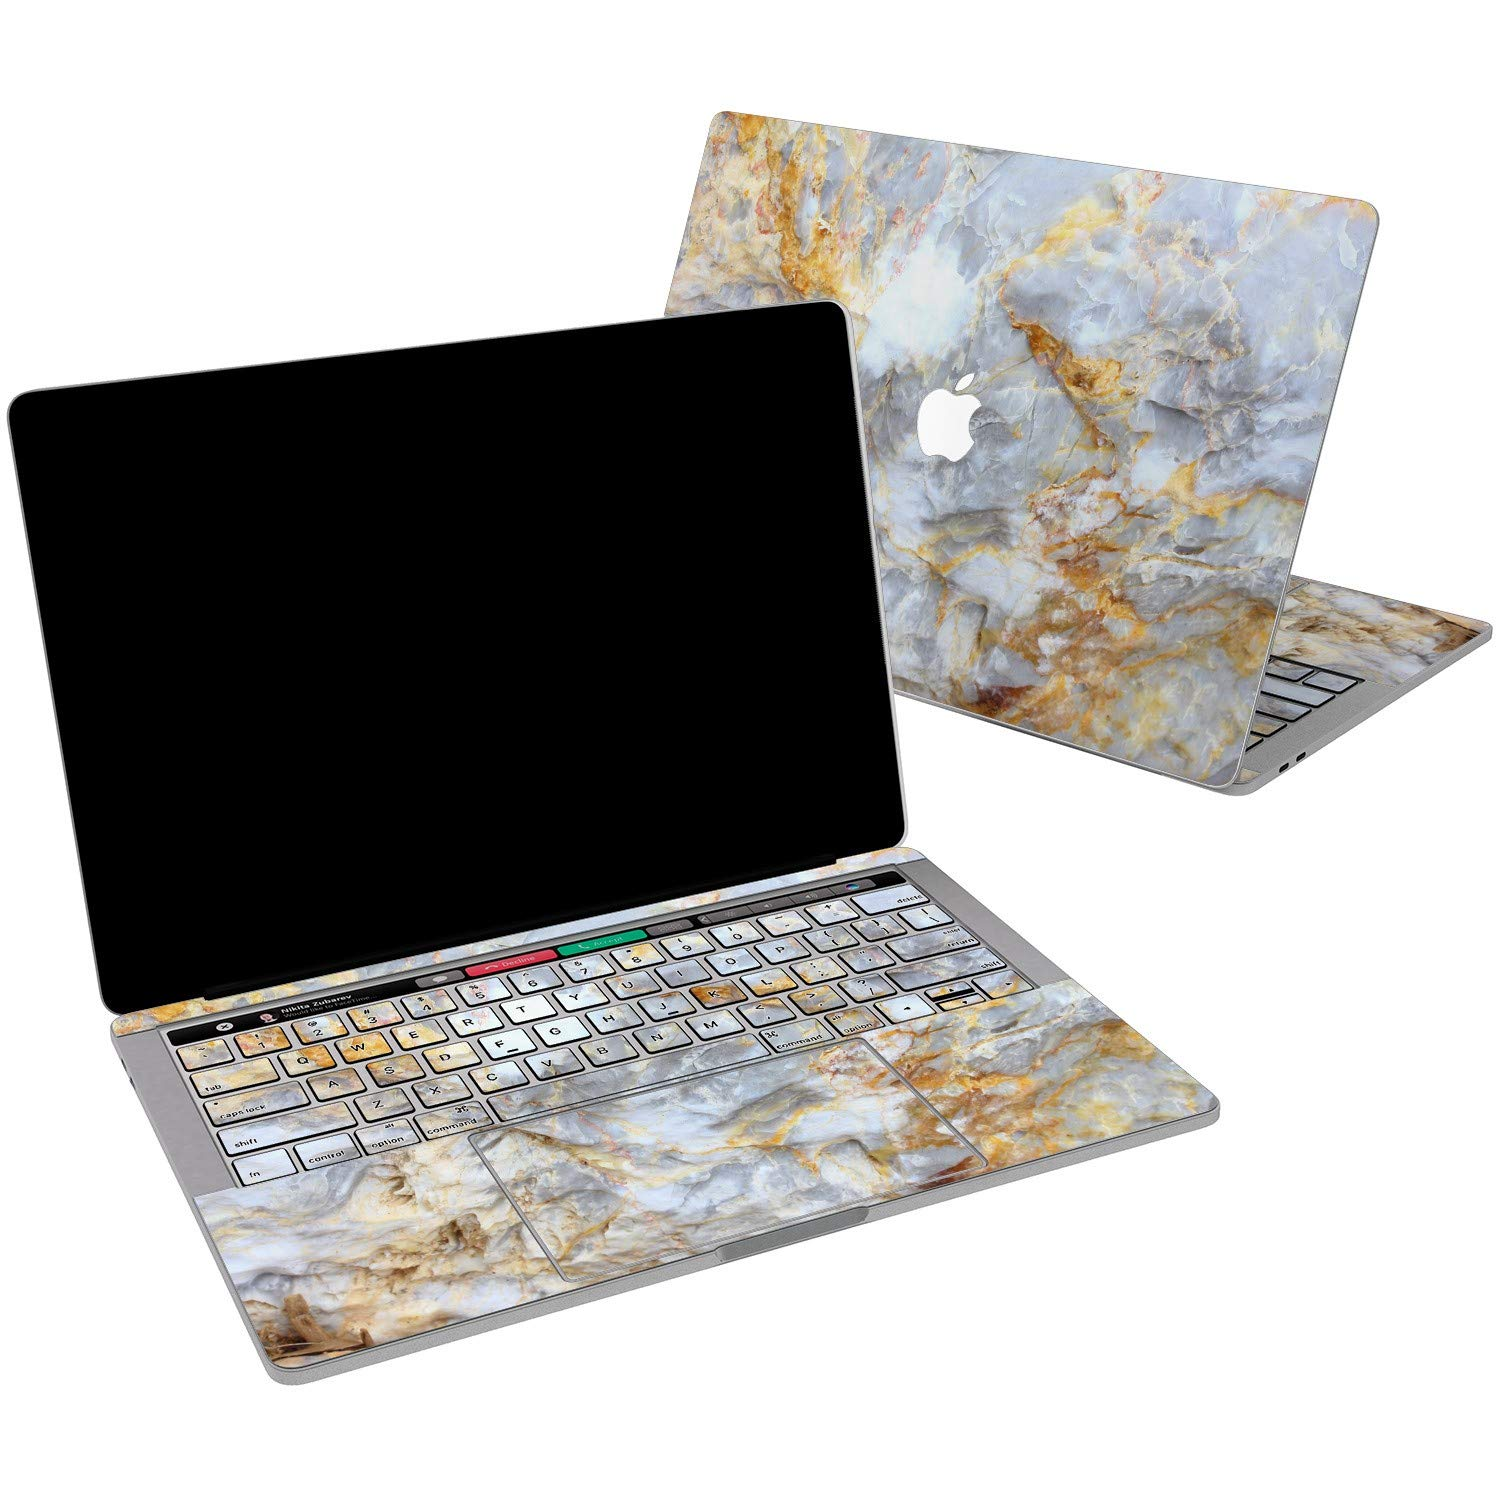 Lex Altern Vinyl Skin for MacBook Air 13 inch Mac Pro 15 Retina 12 11 2019 2018 2017 2016 2015 Abstract Pearl Marble White Nature Golden Chic Print Laptop Cover Decal Sticker Touch Bar Protective